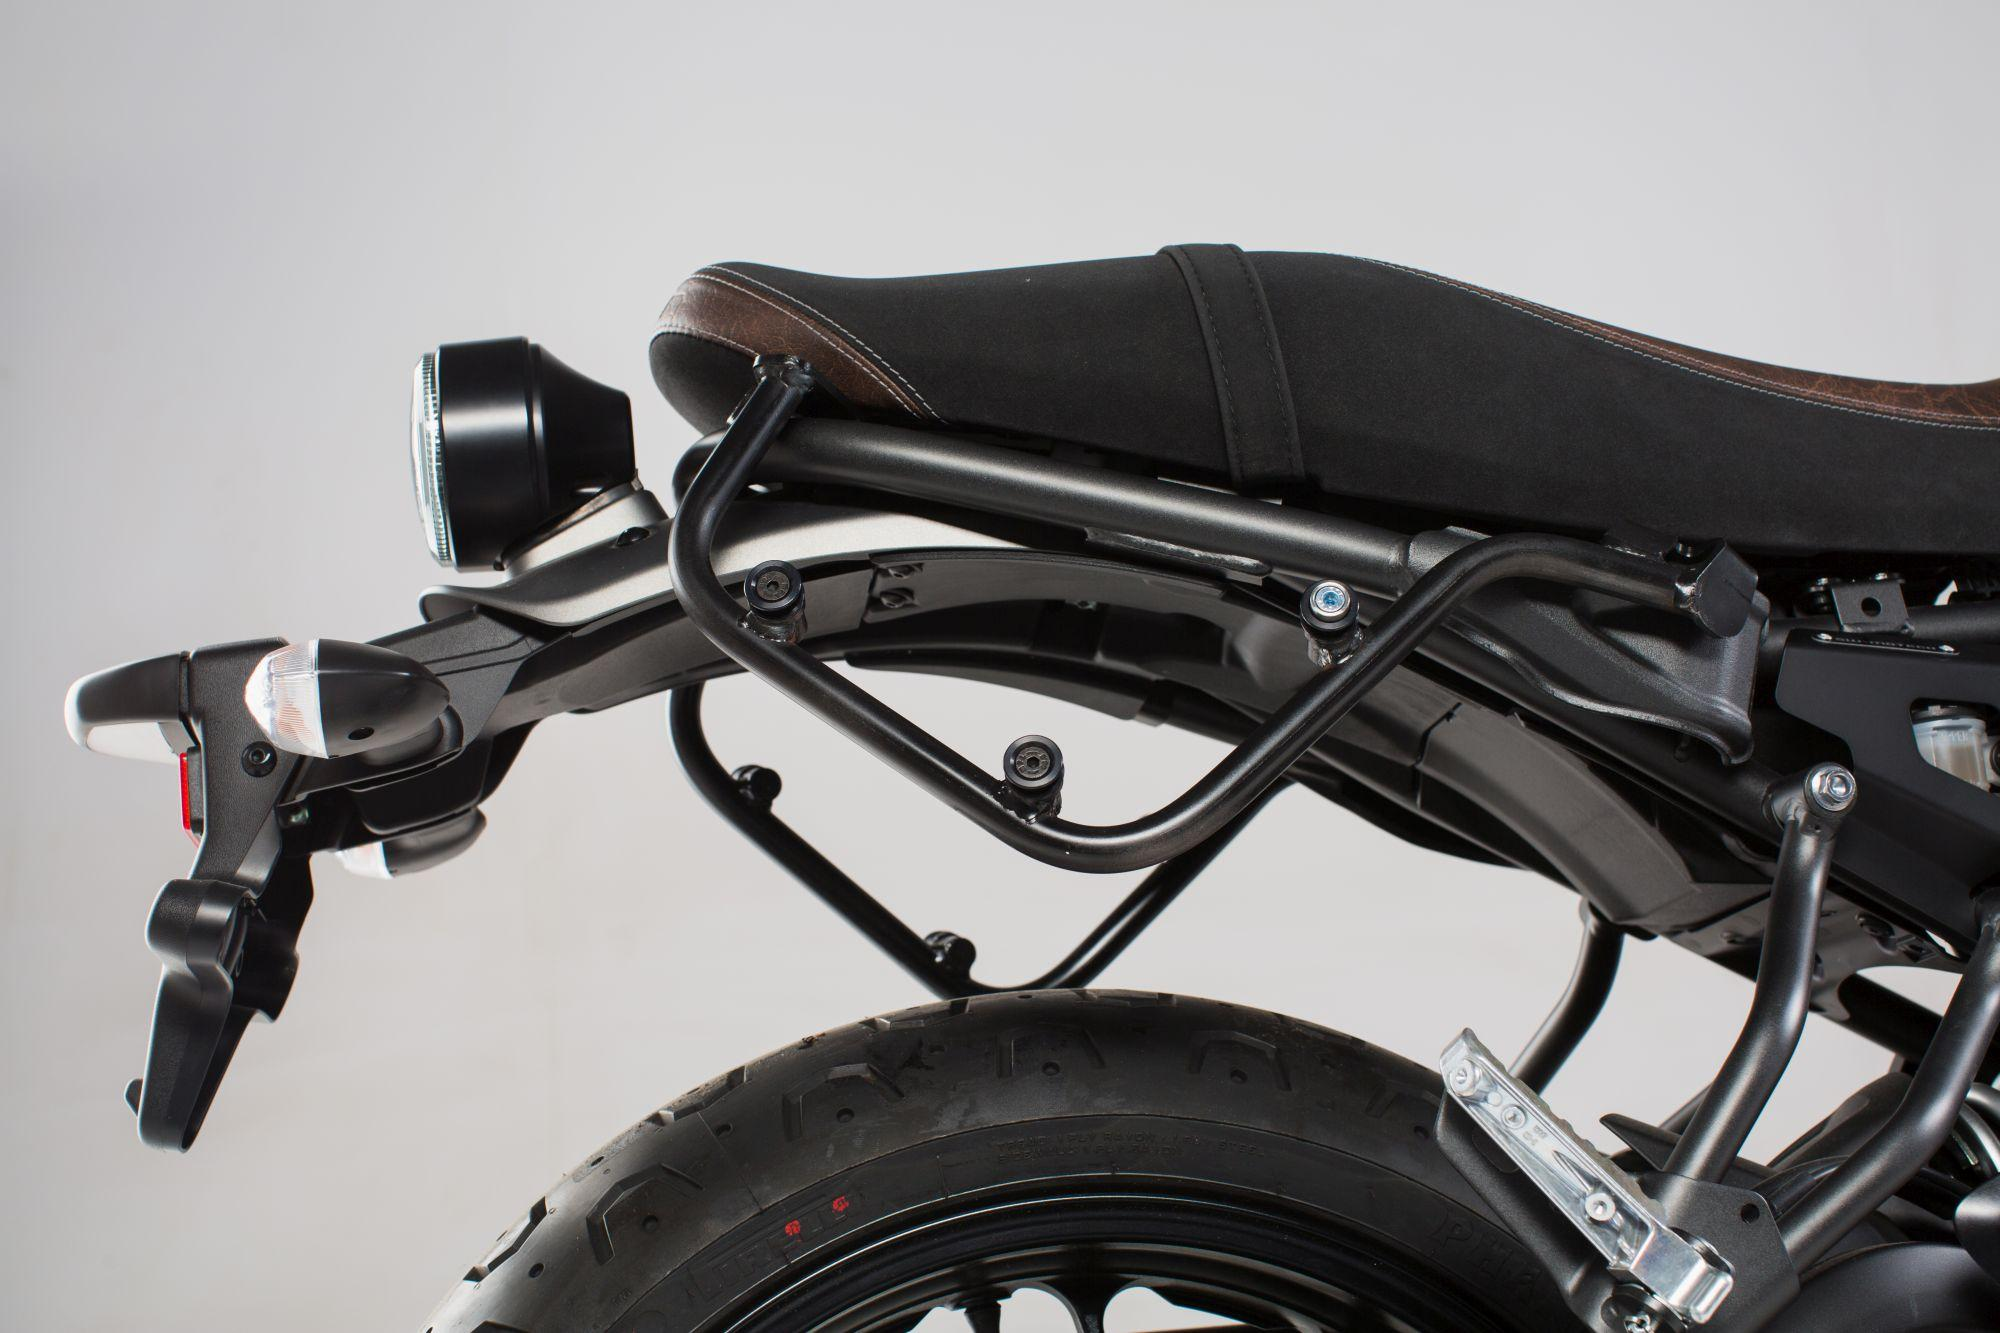 sw motech zubeh r f r die yamaha xsr700 motorrad fotos. Black Bedroom Furniture Sets. Home Design Ideas